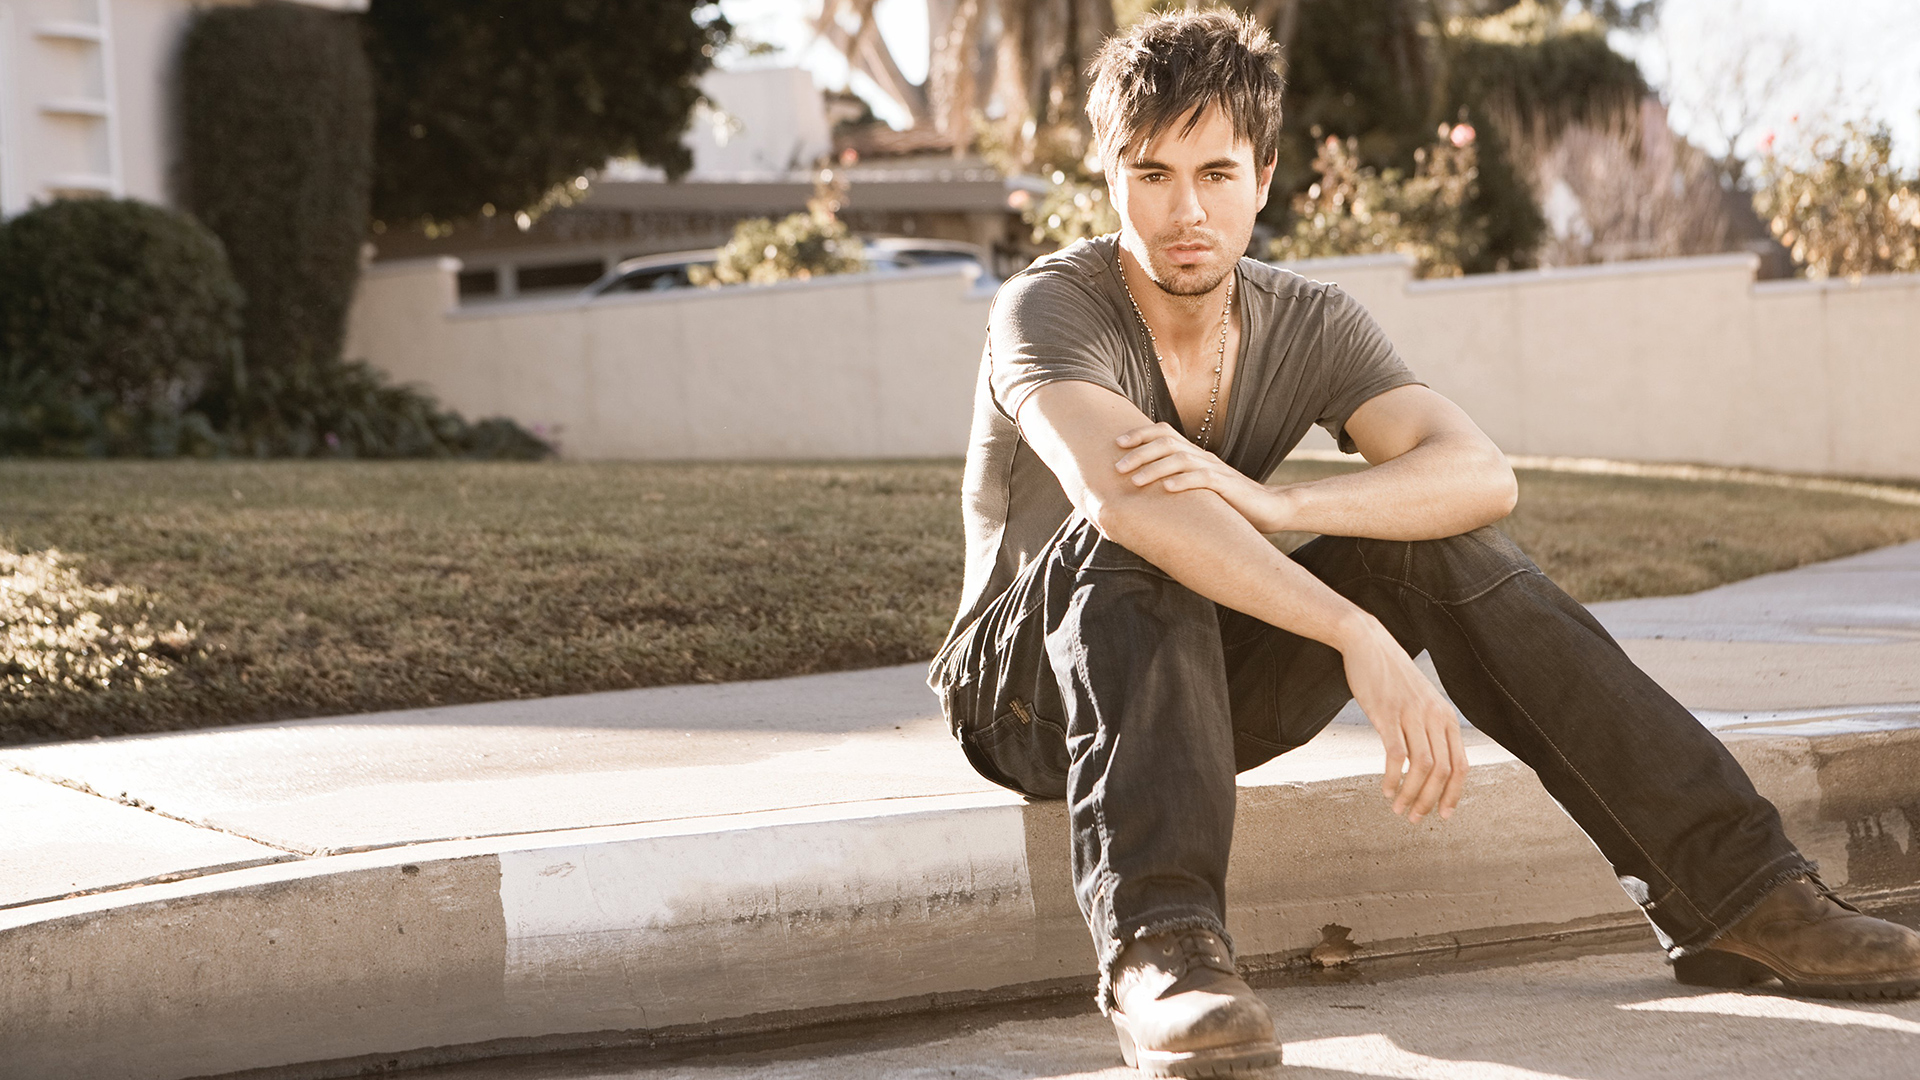 Enrique Iglesias Desktop HD Wallpaper 52845 1920x1080 px ...